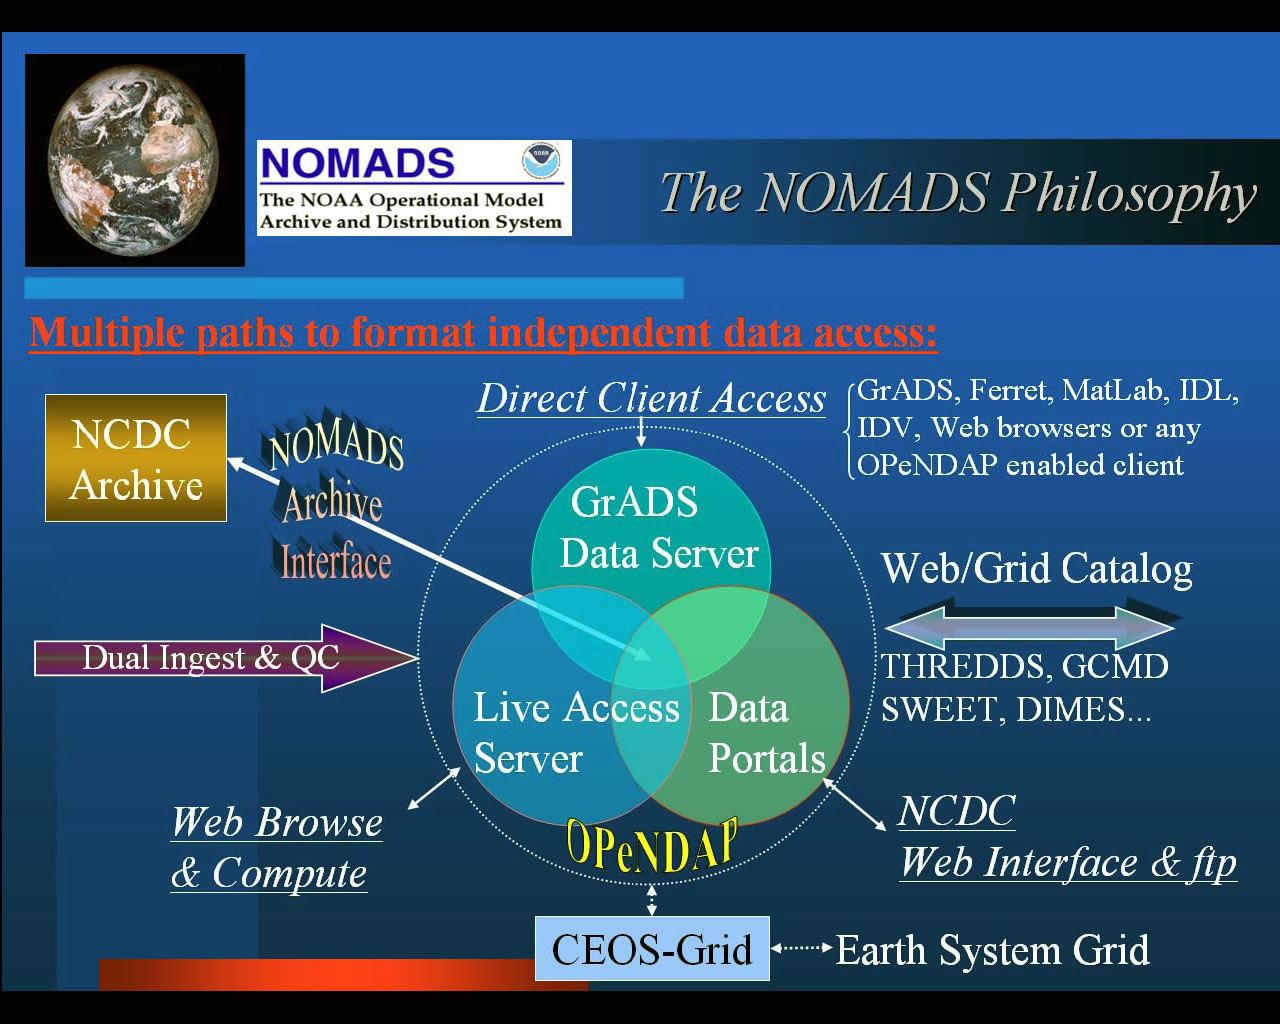 nomads-architecture with GrADS data server, data portals, Live Access Server and data flow included.